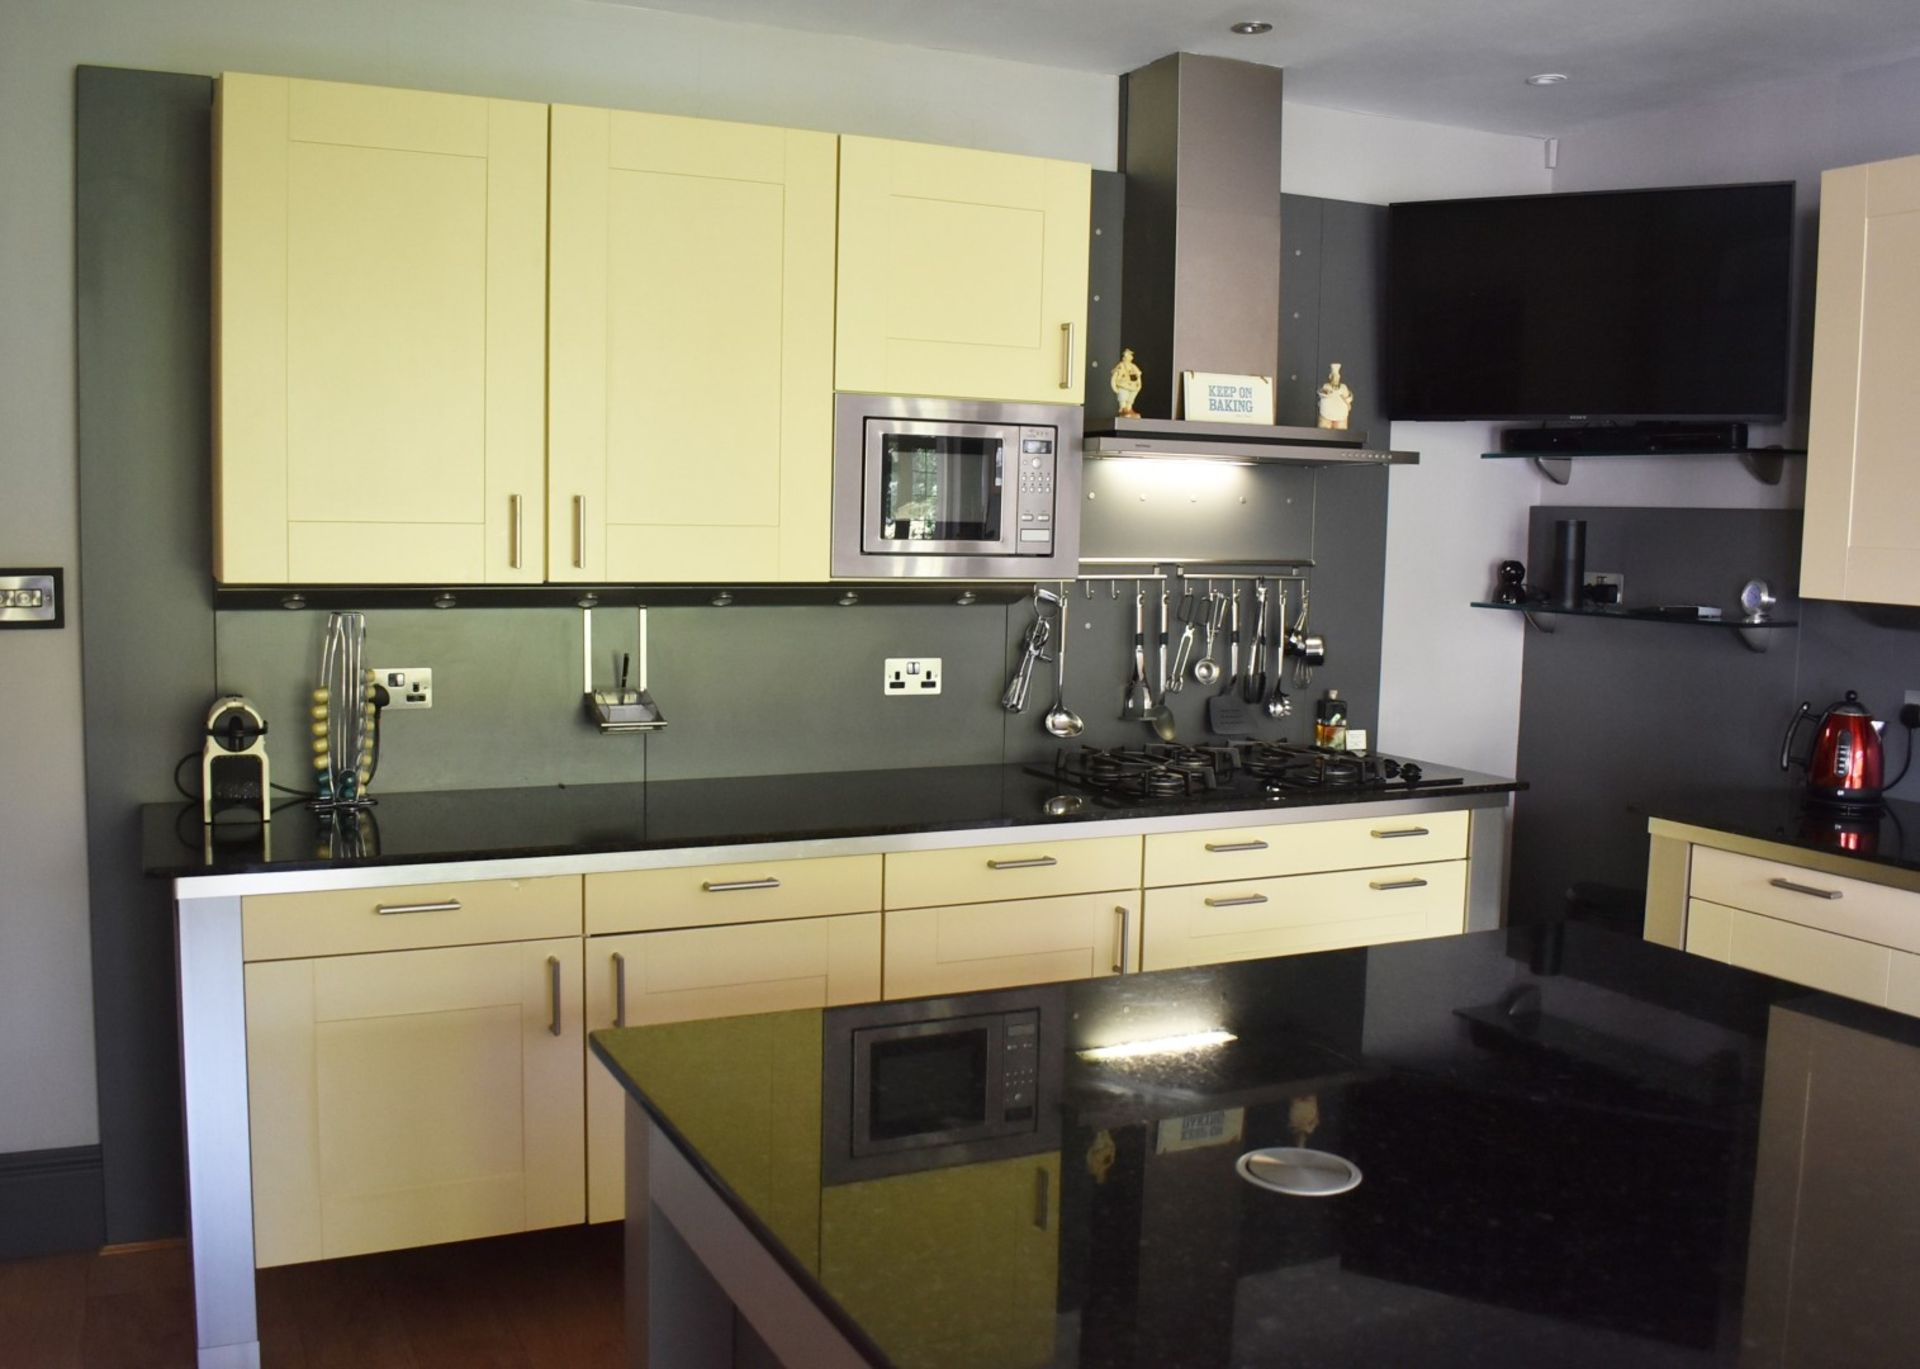 1 x SieMatic Contemporary Fitted Kitchen With Appliances - Features Shaker Style Doors, Central - Image 80 of 96